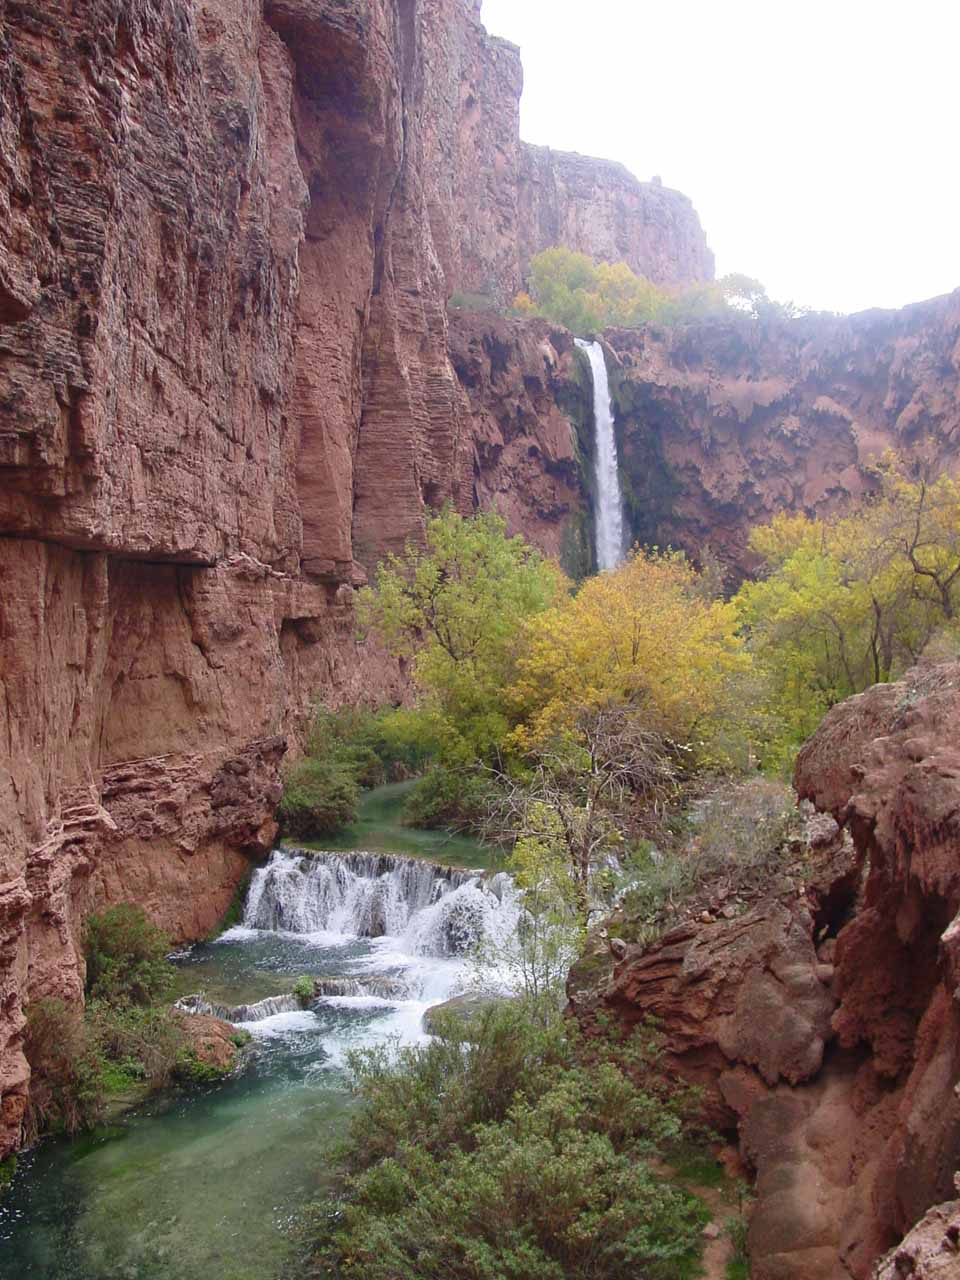 Mooney Falls and a lower cascade